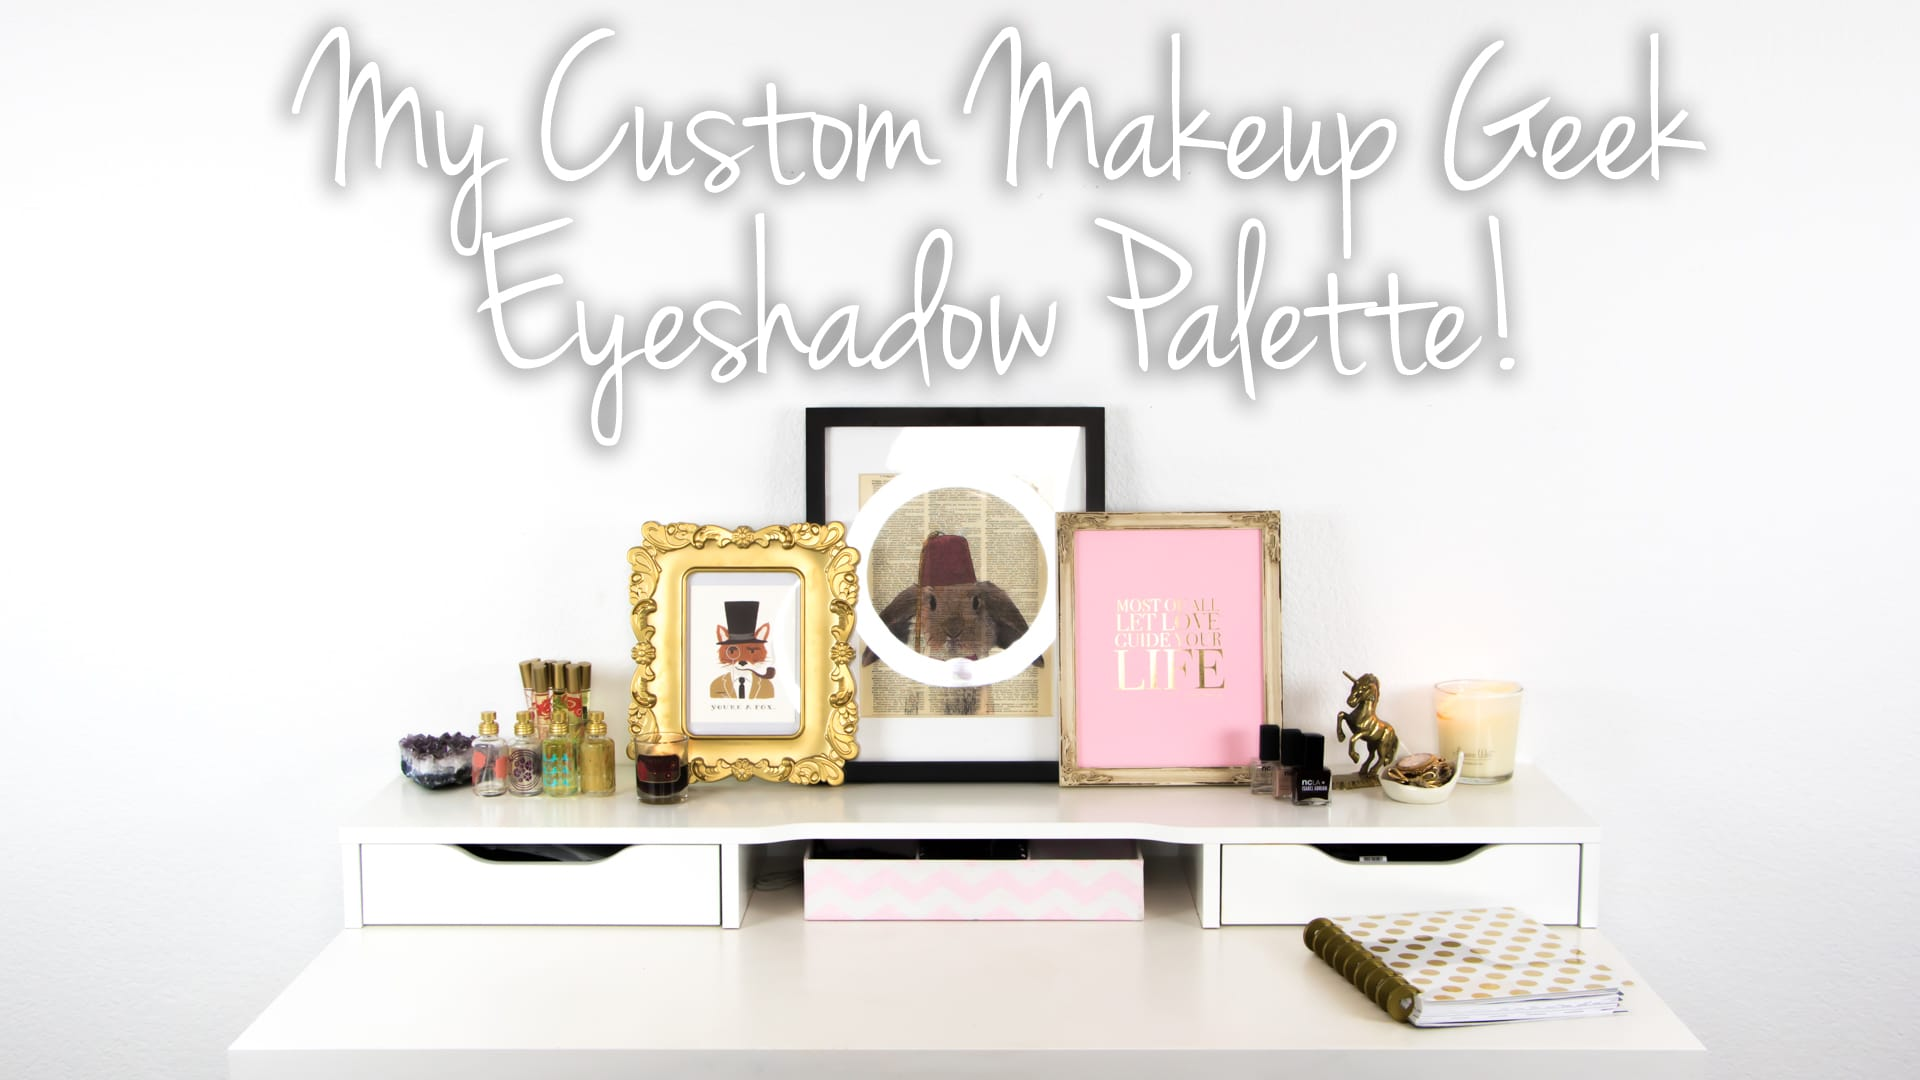 My Custom Makeup Geek Eyeshadow Palette Video